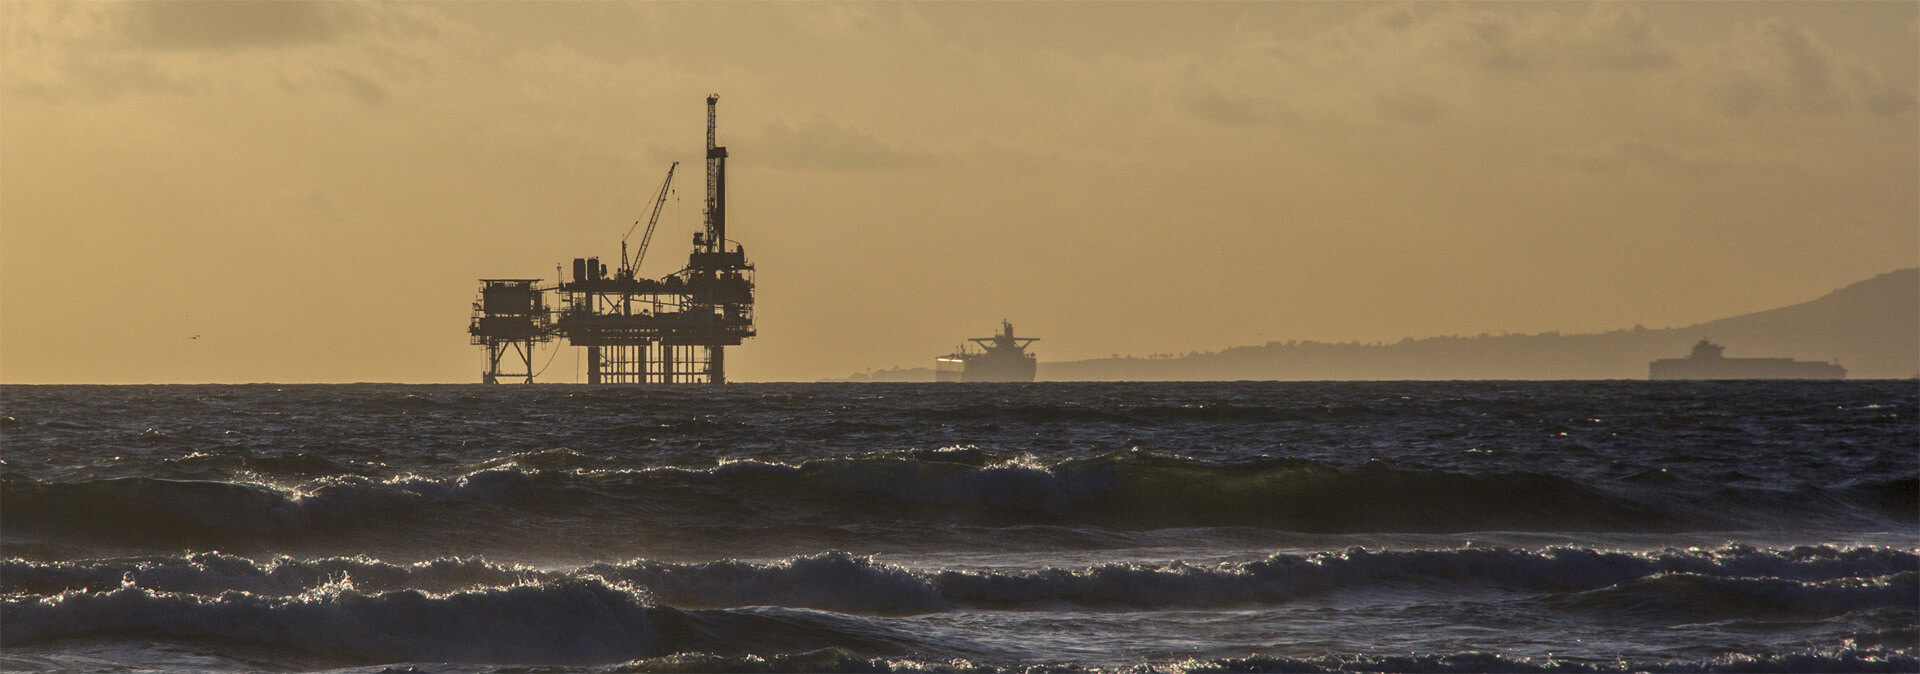 Offshore oil and gas platform that complies with EH&S standards.